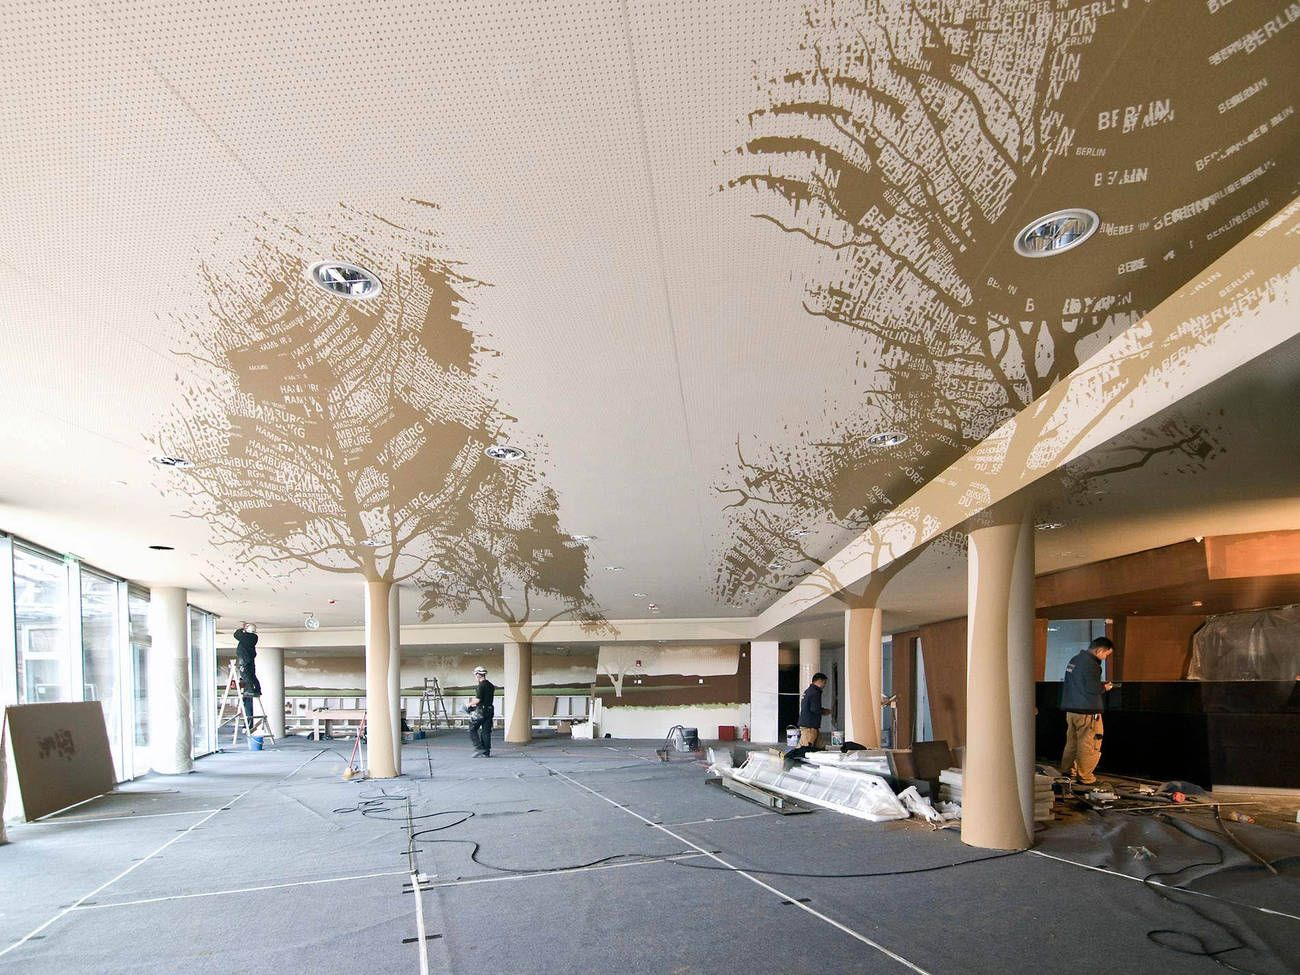 trees ceiling graphics - Google Search & 42 best Sky perspective graphics images on Pinterest | Canopy ...